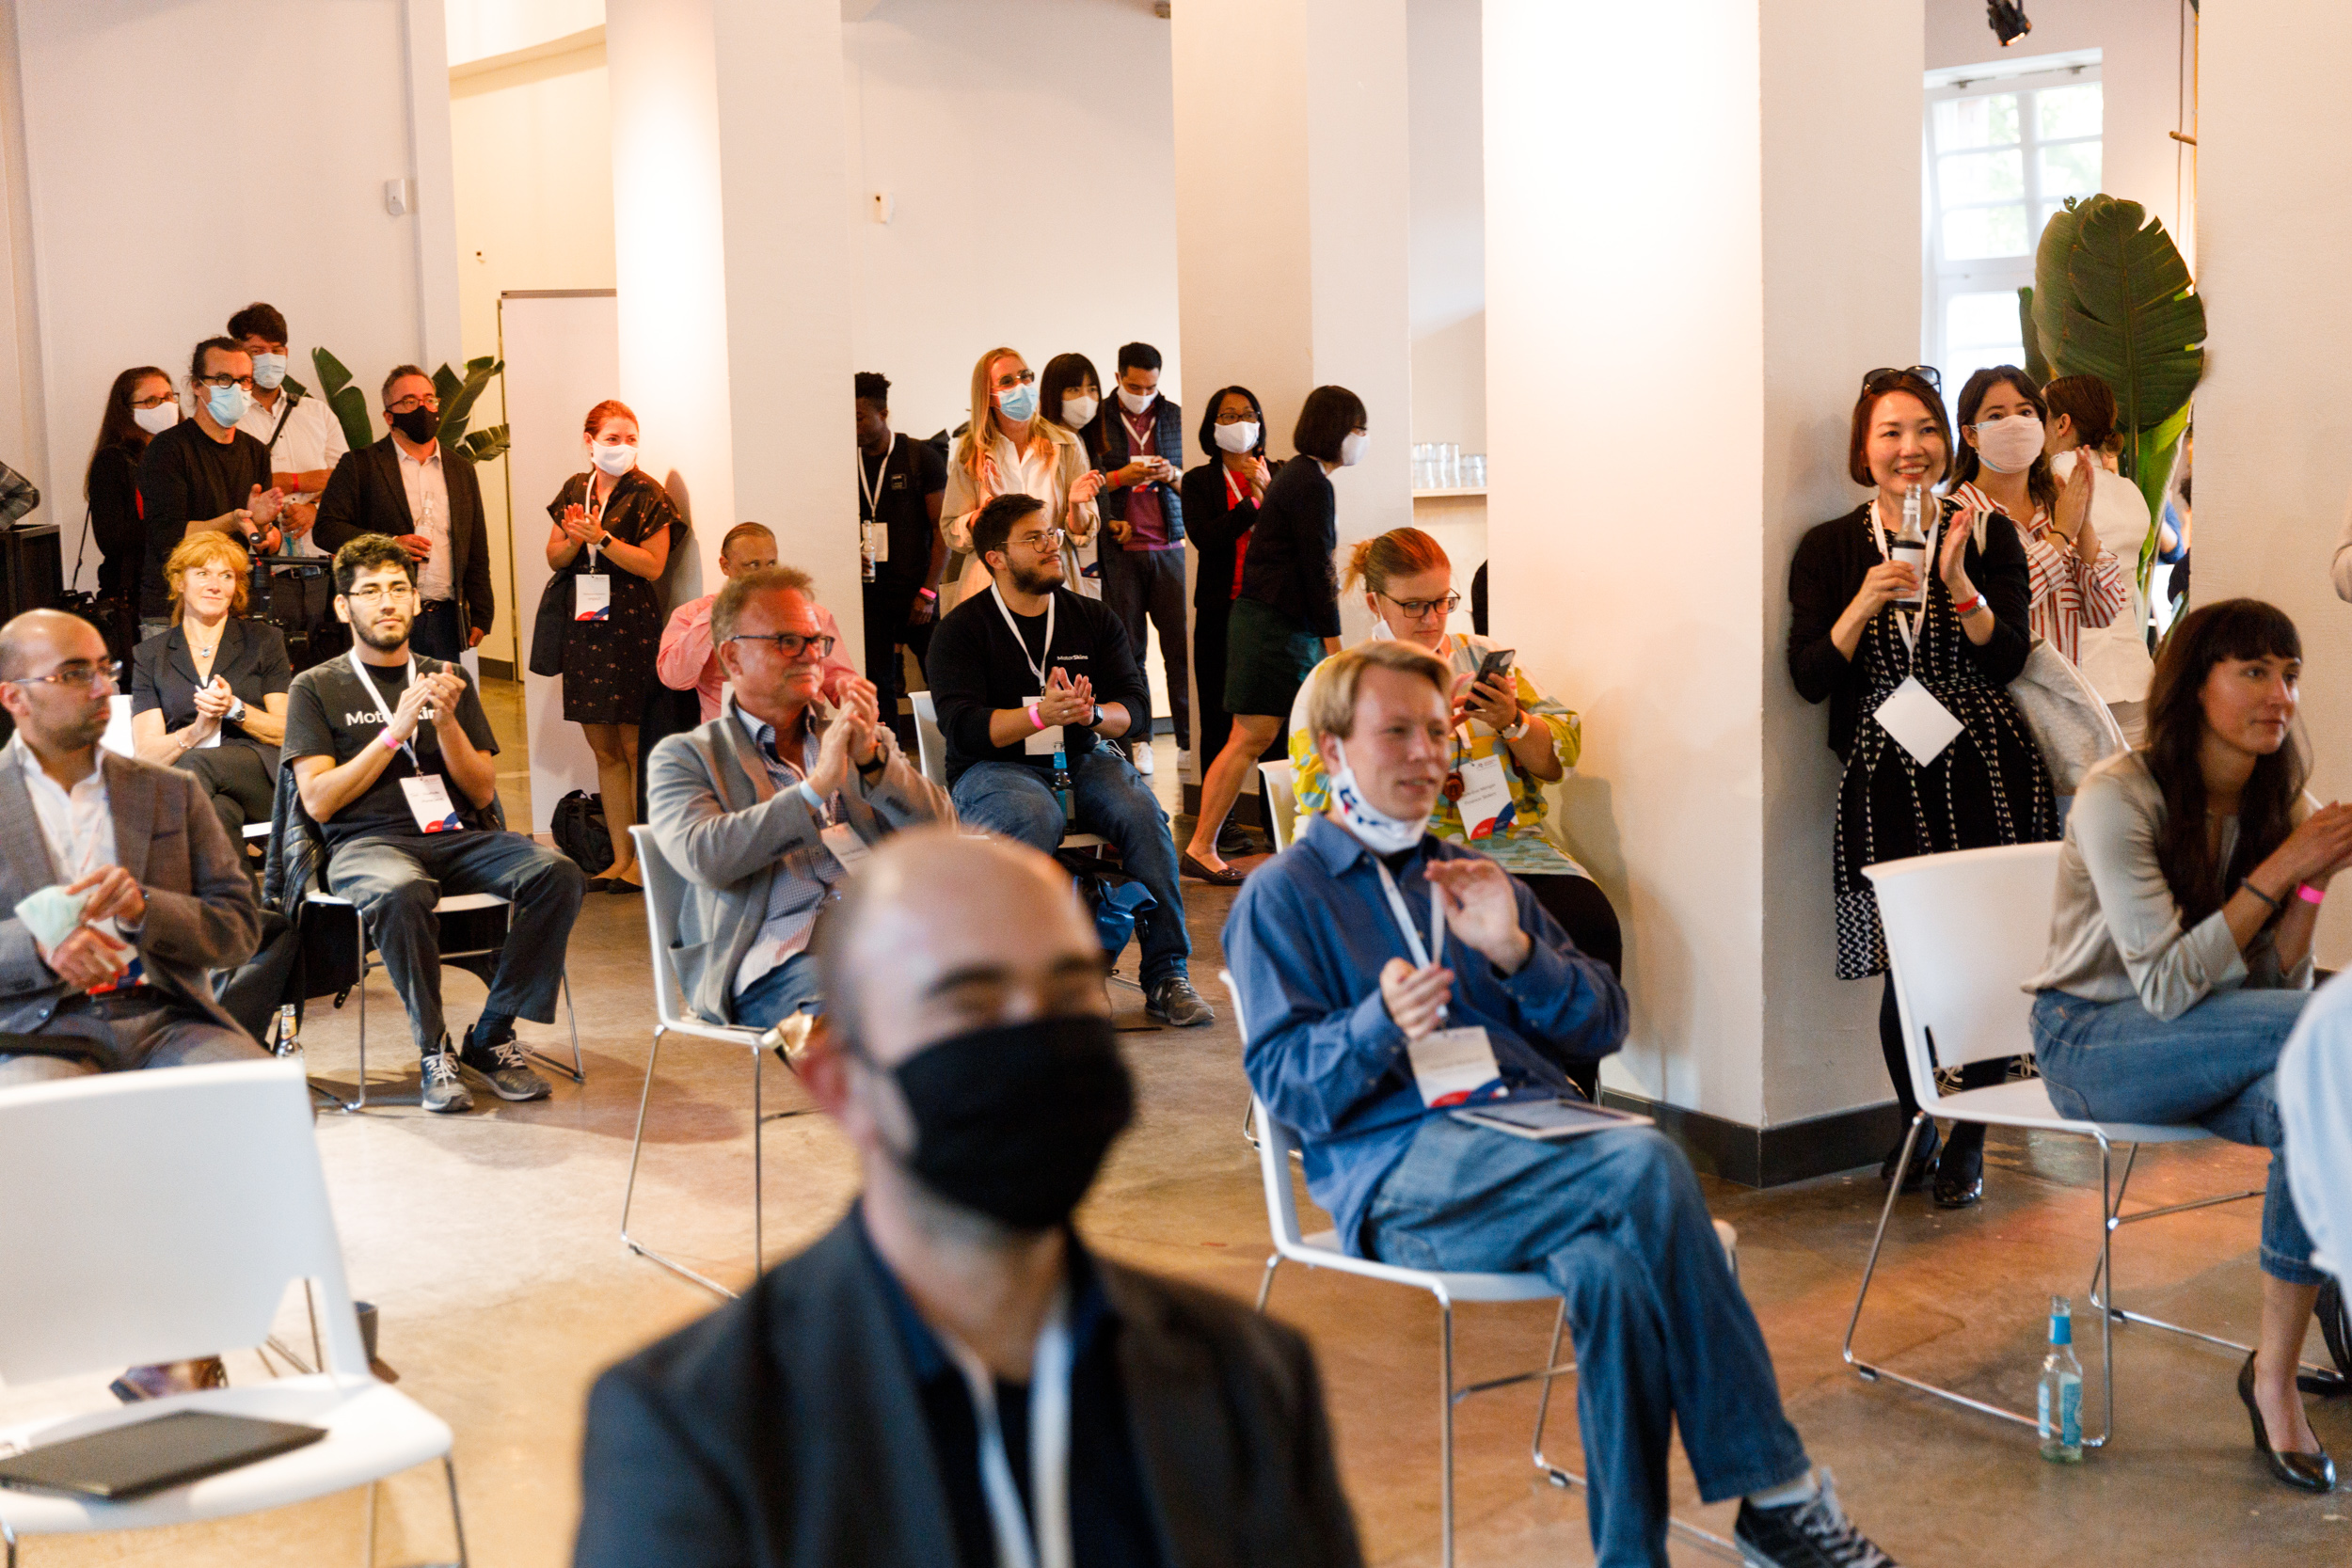 23 Sep Quick Recap: Day 2 of AsiaBerlin Summit 2020